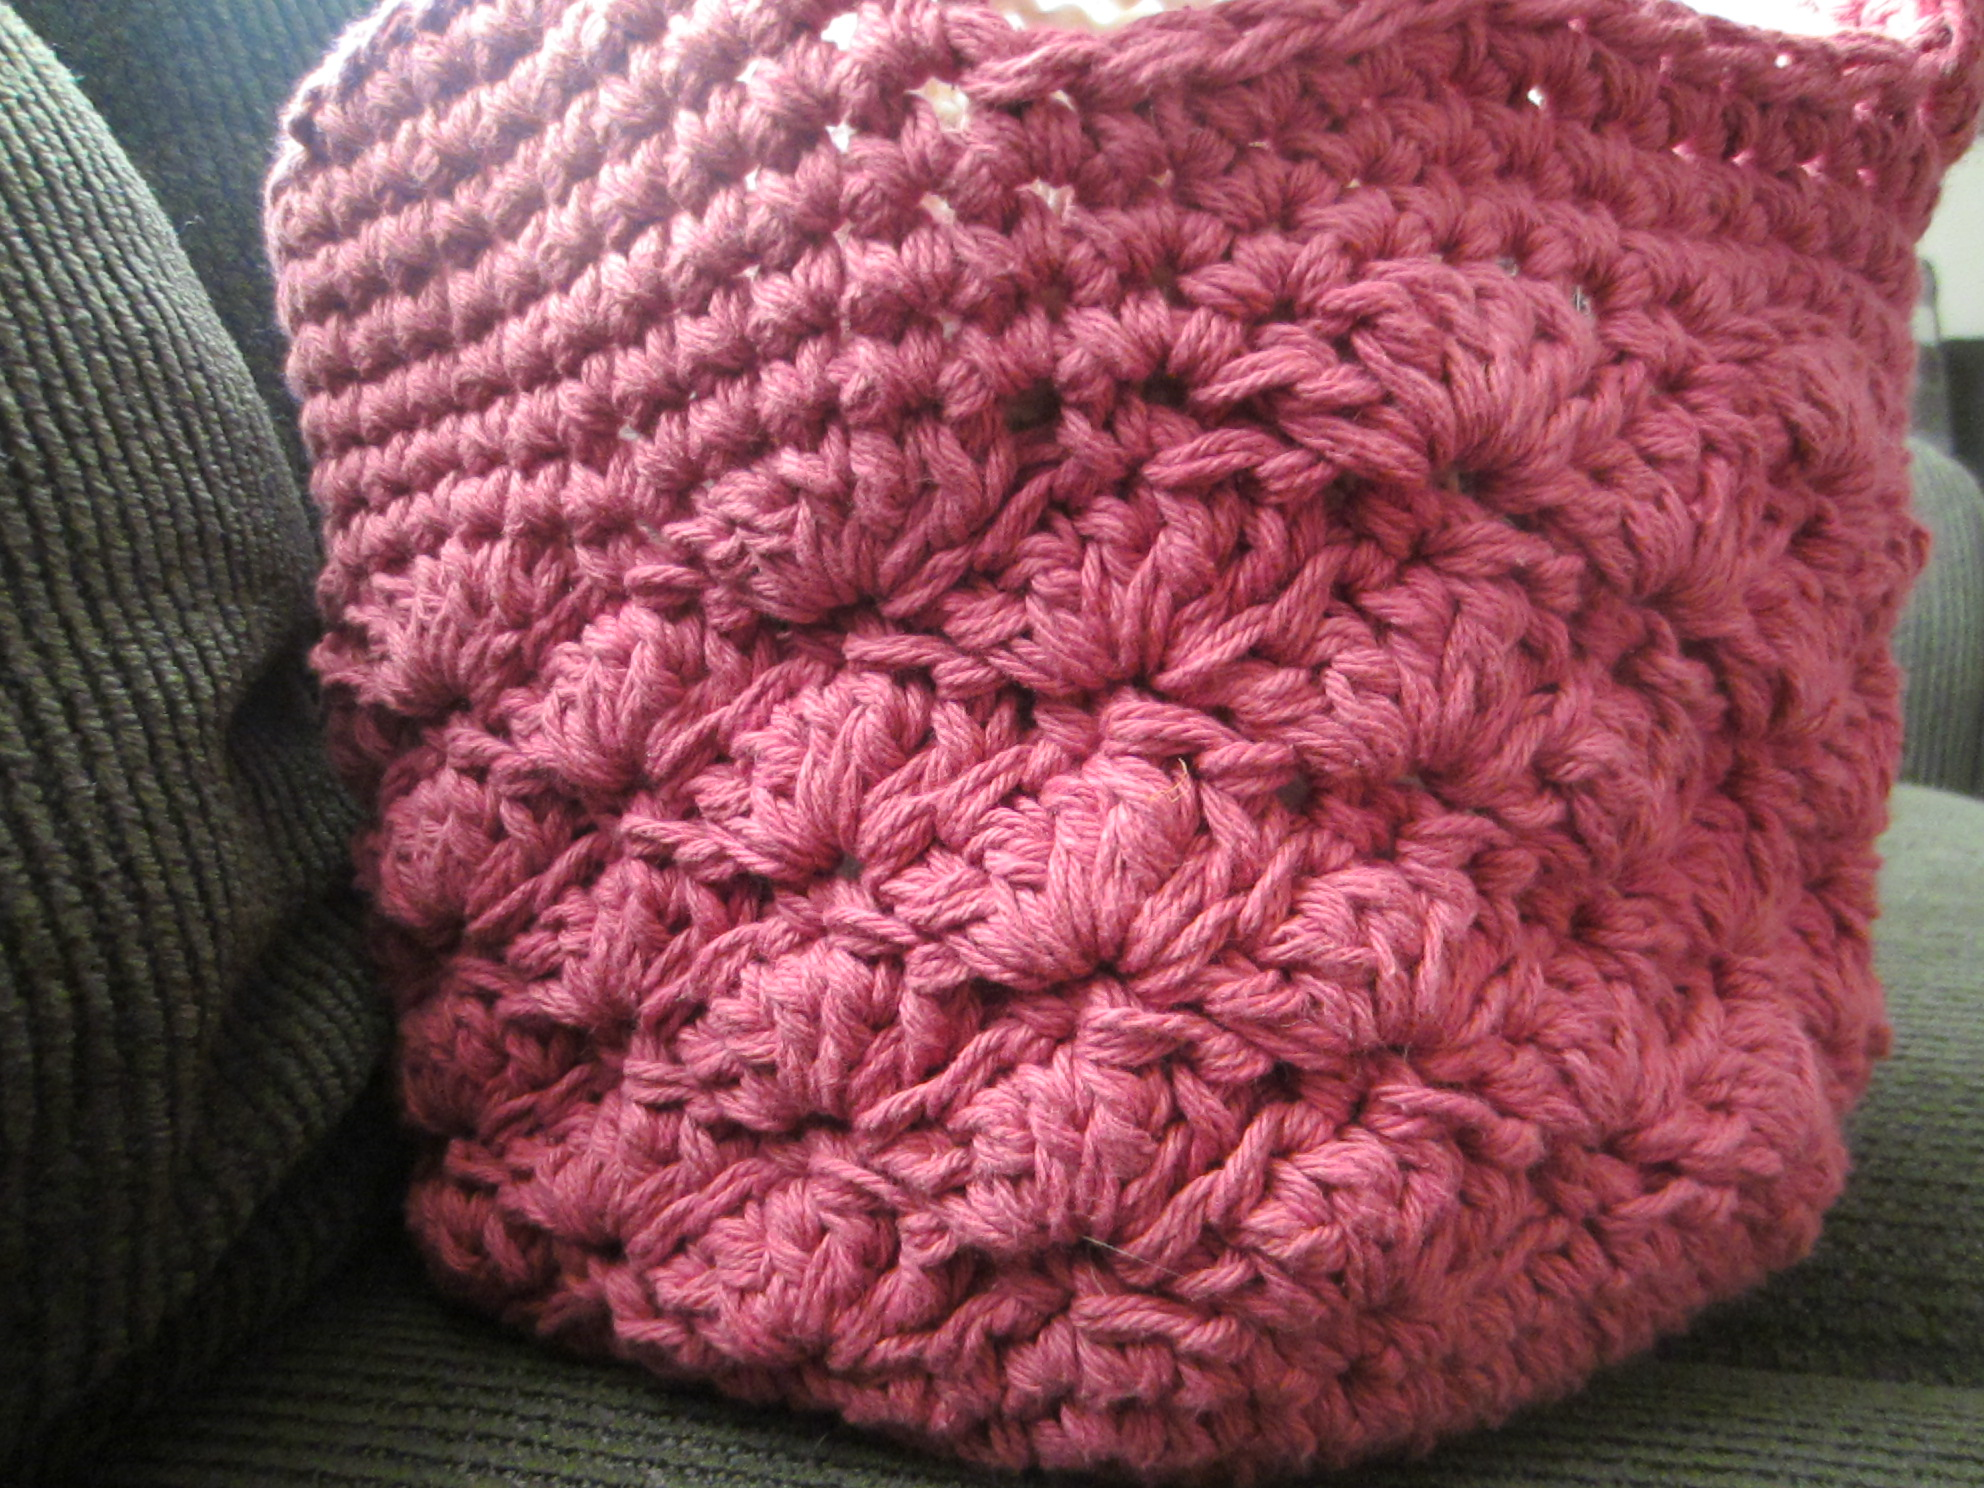 Crochet Patterns Cotton Yarn : By gmaellenscraftycorner Published April 26, 2013 Full size is ...